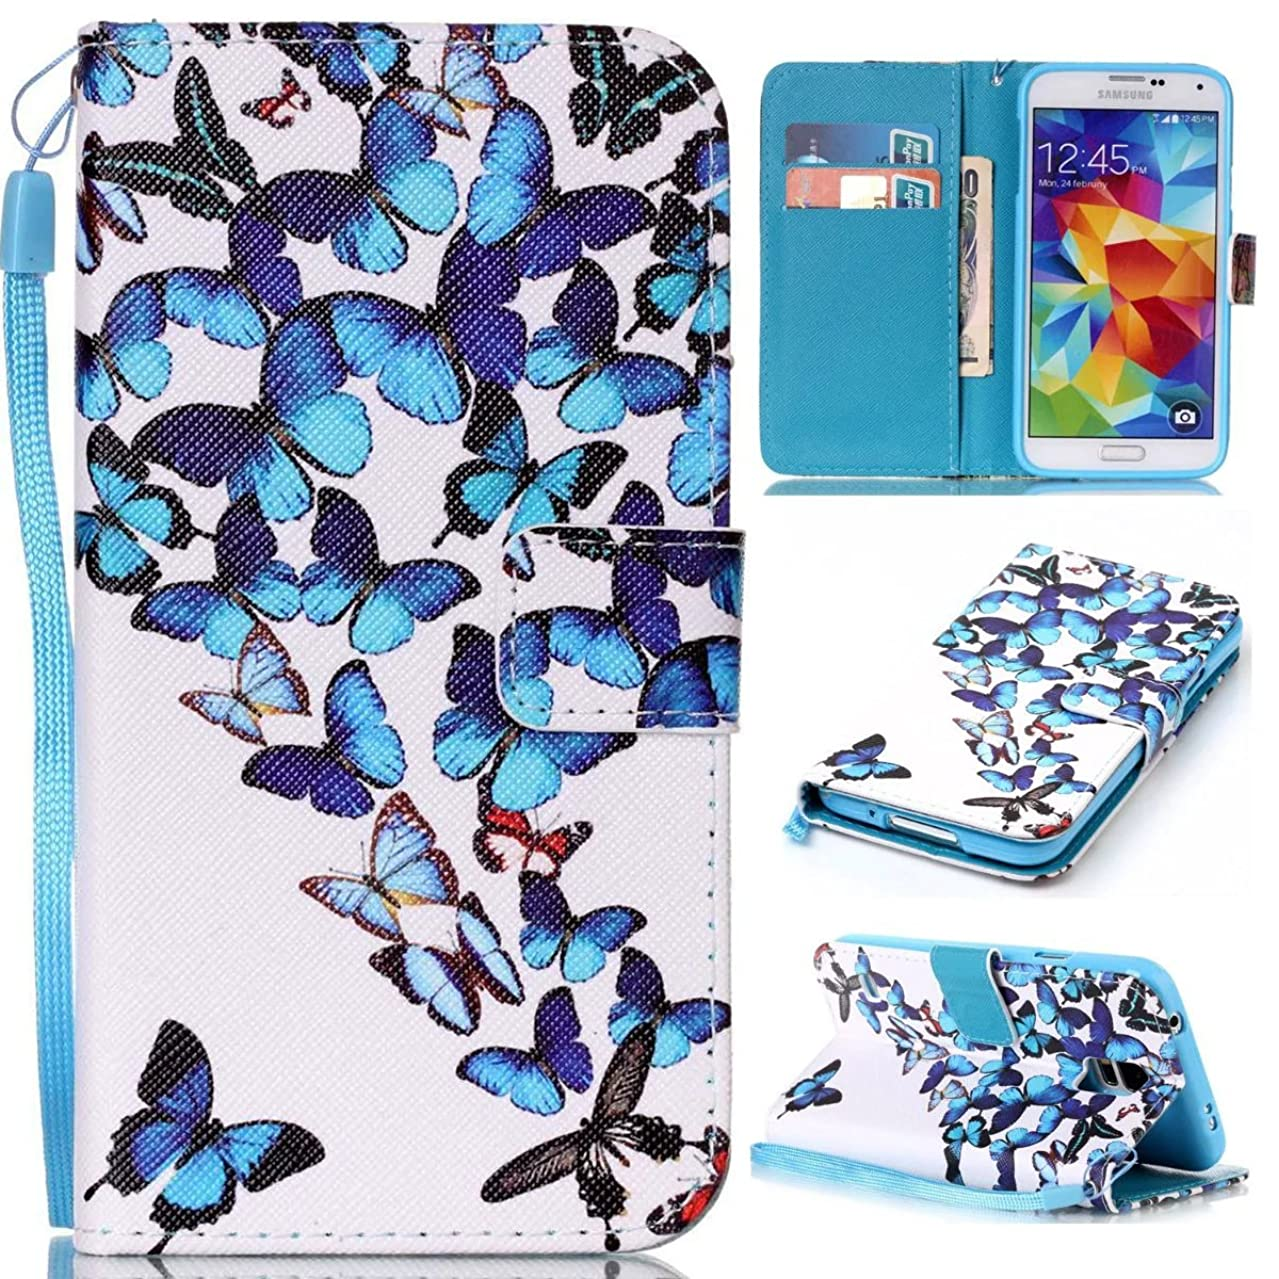 Galaxy S5 Case, Kmety Butterfly PU Synthetic Leather Wristlet Magnet Snap Wallet [Credit Card/Cash Slots] Kickstand Flip Case Cover for Samsung Galaxy S5